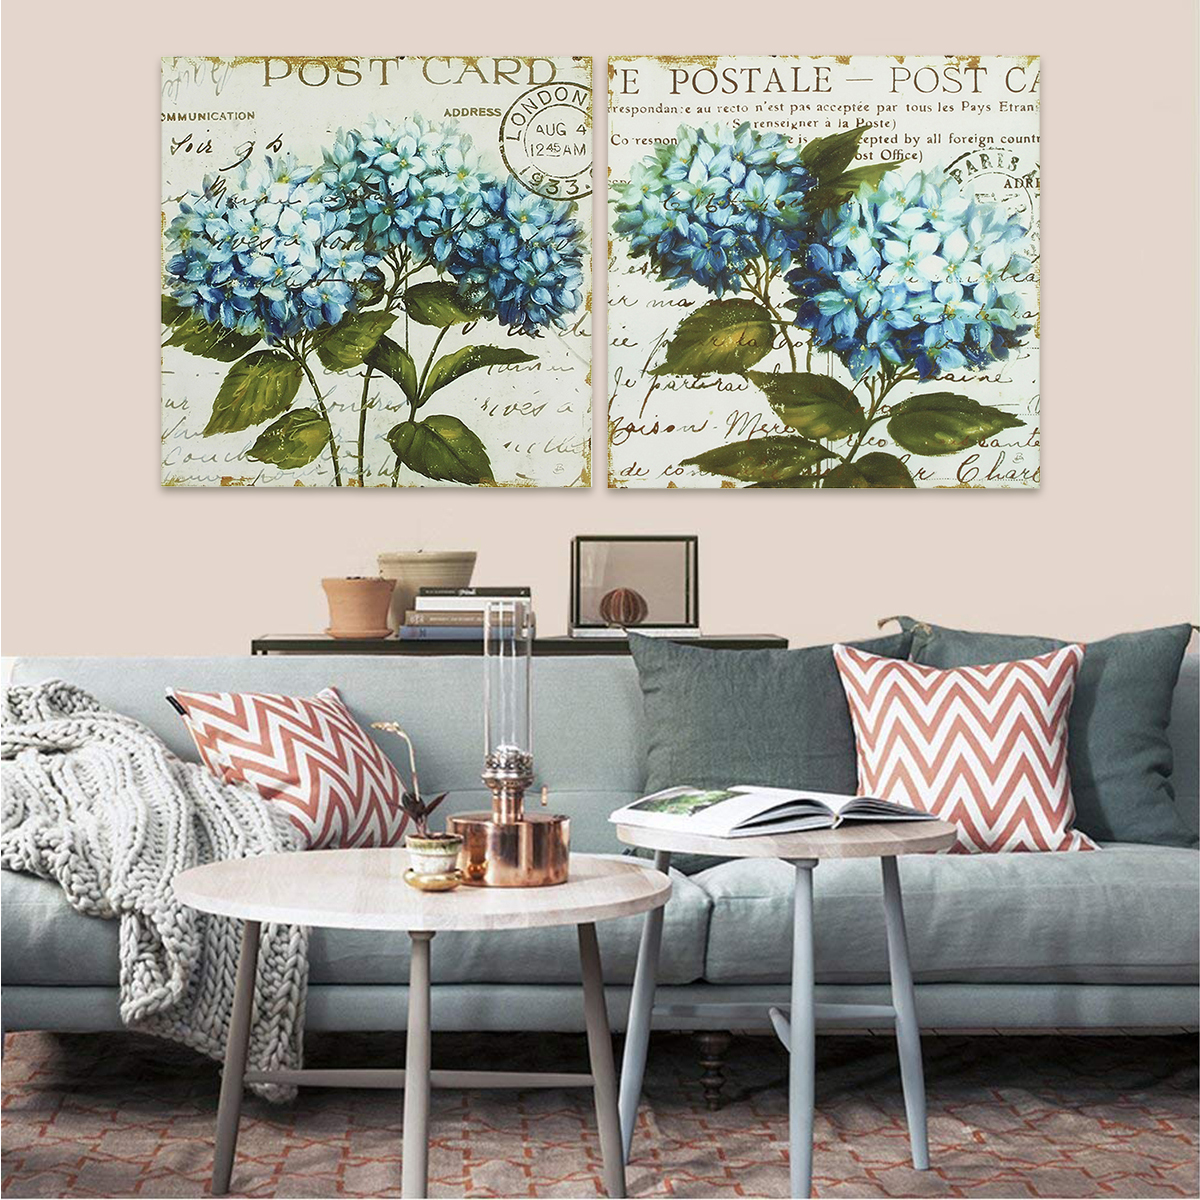 2 PCS Unframed Home Decor Canvas Print Paintings Wall Art Vintage Flowers Blue Green